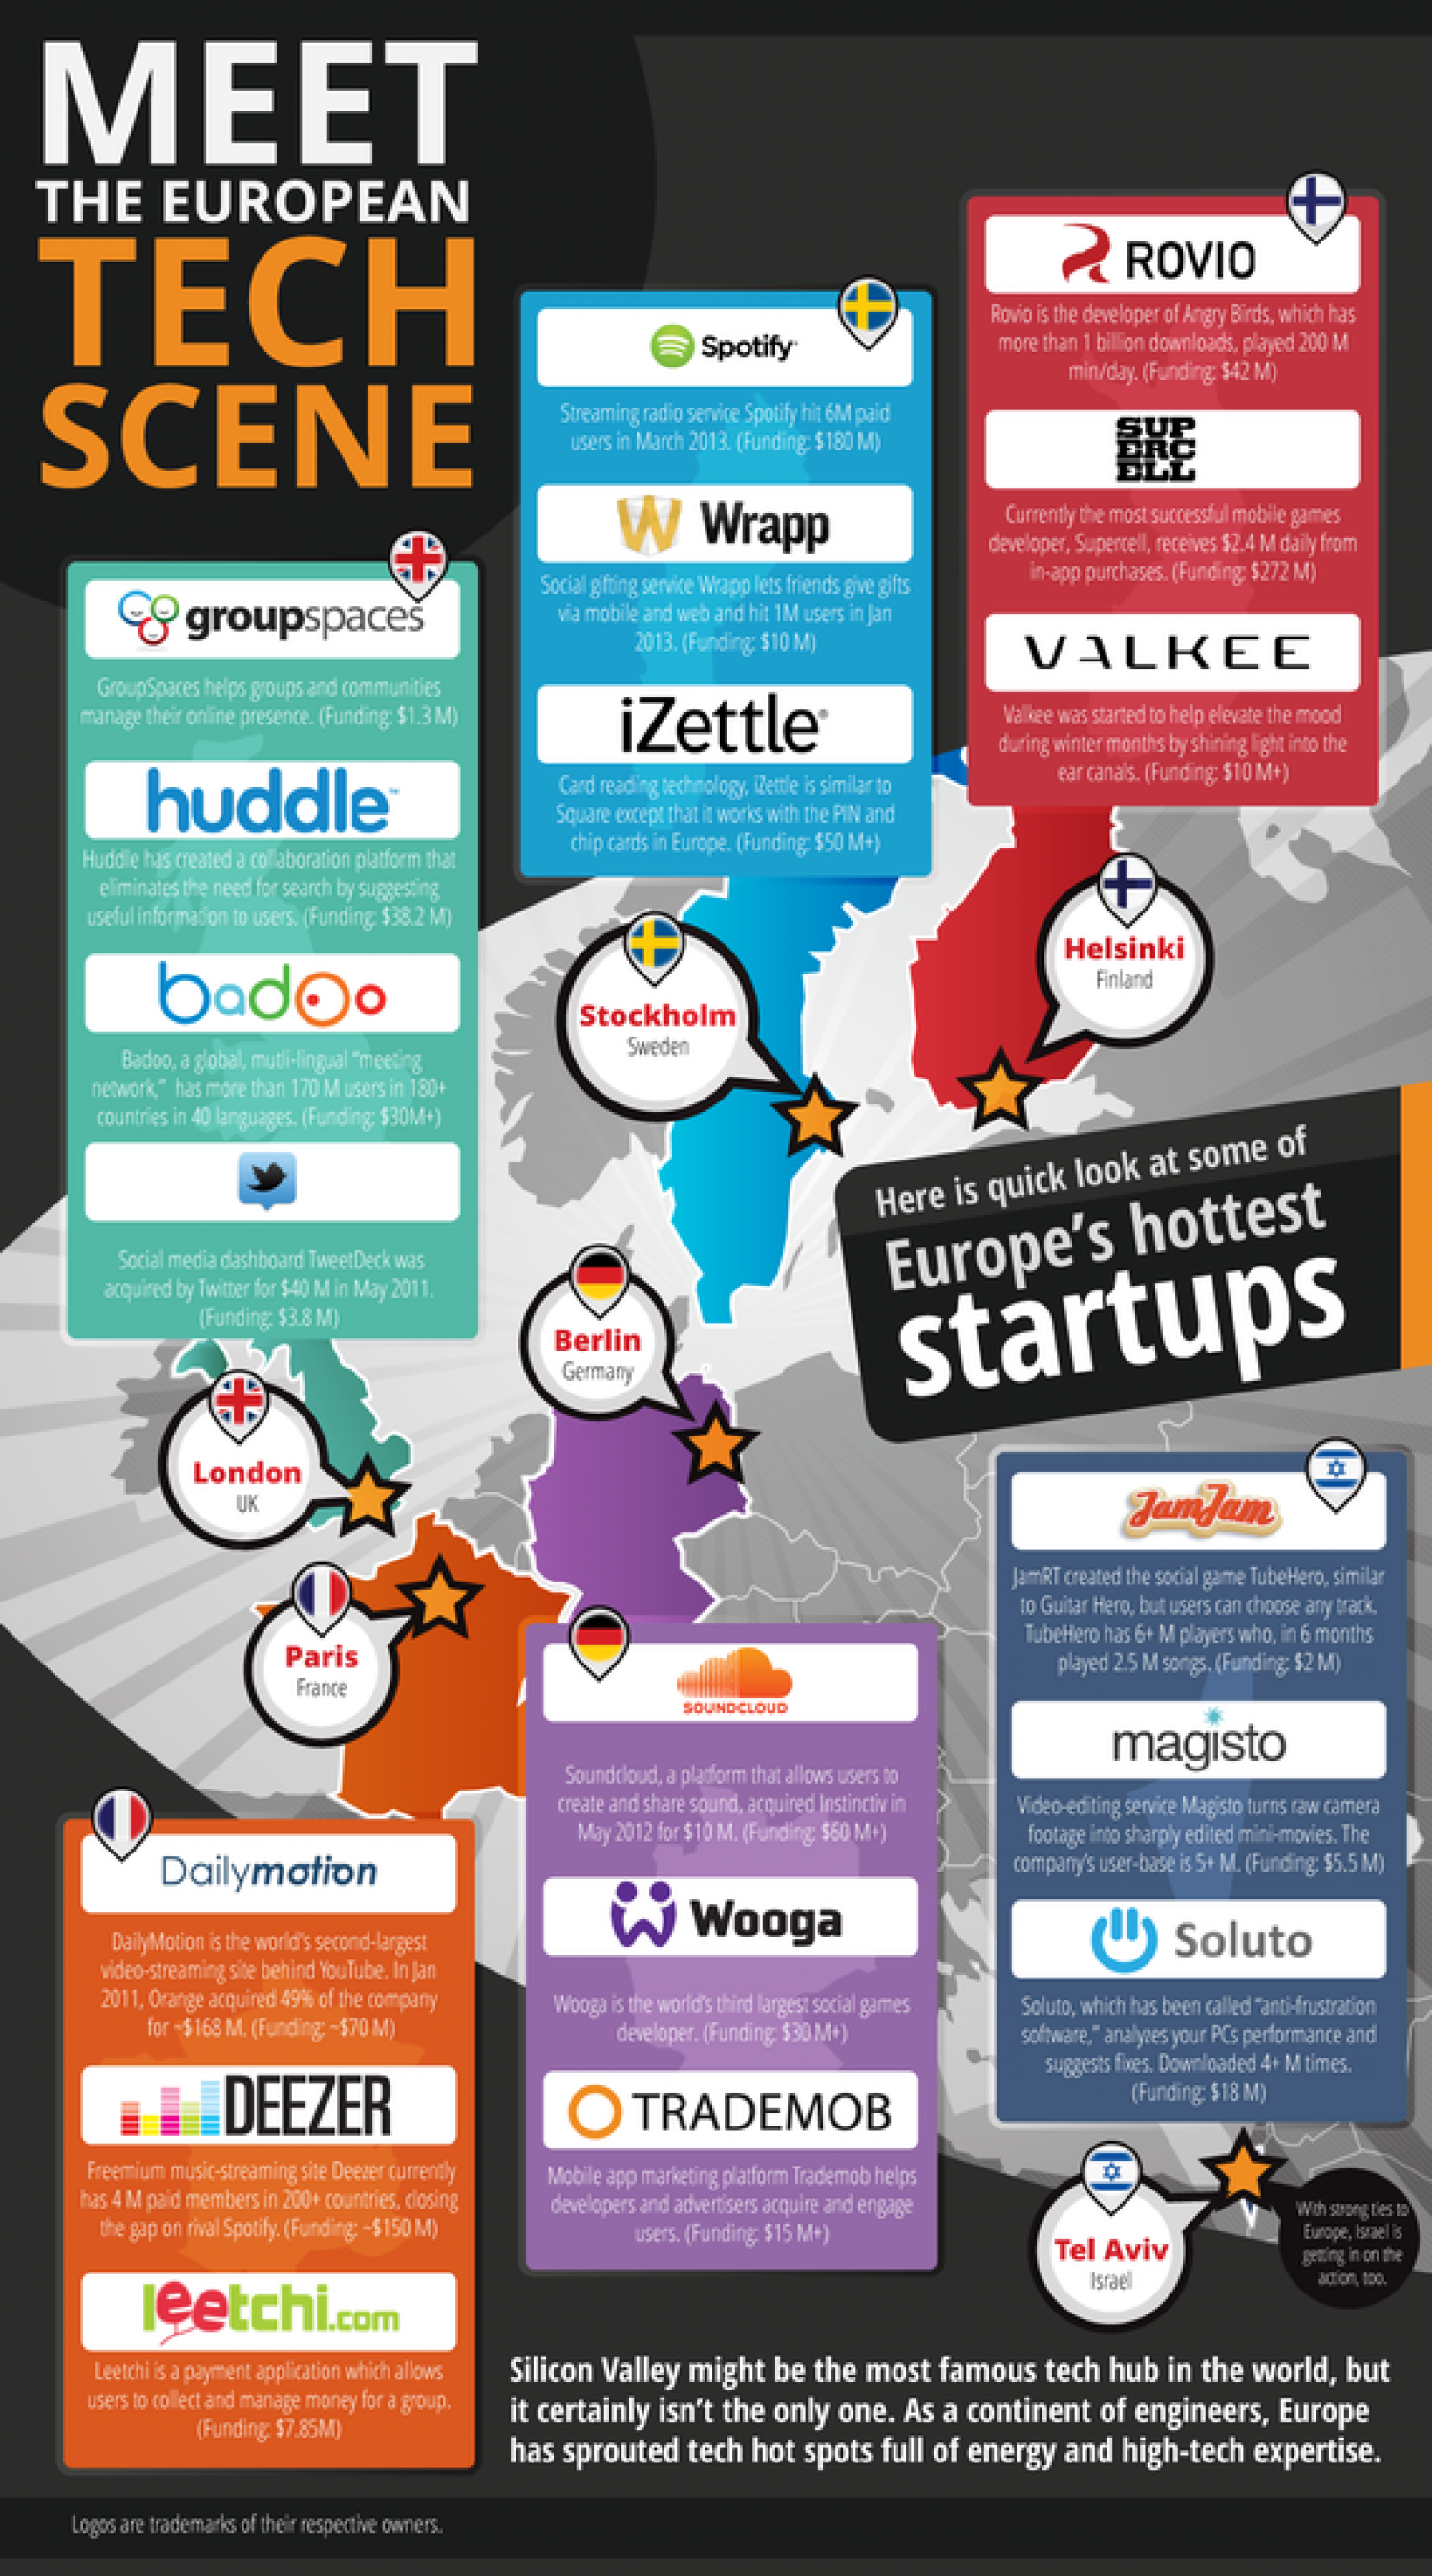 Meet the European Tech Scene Infographic